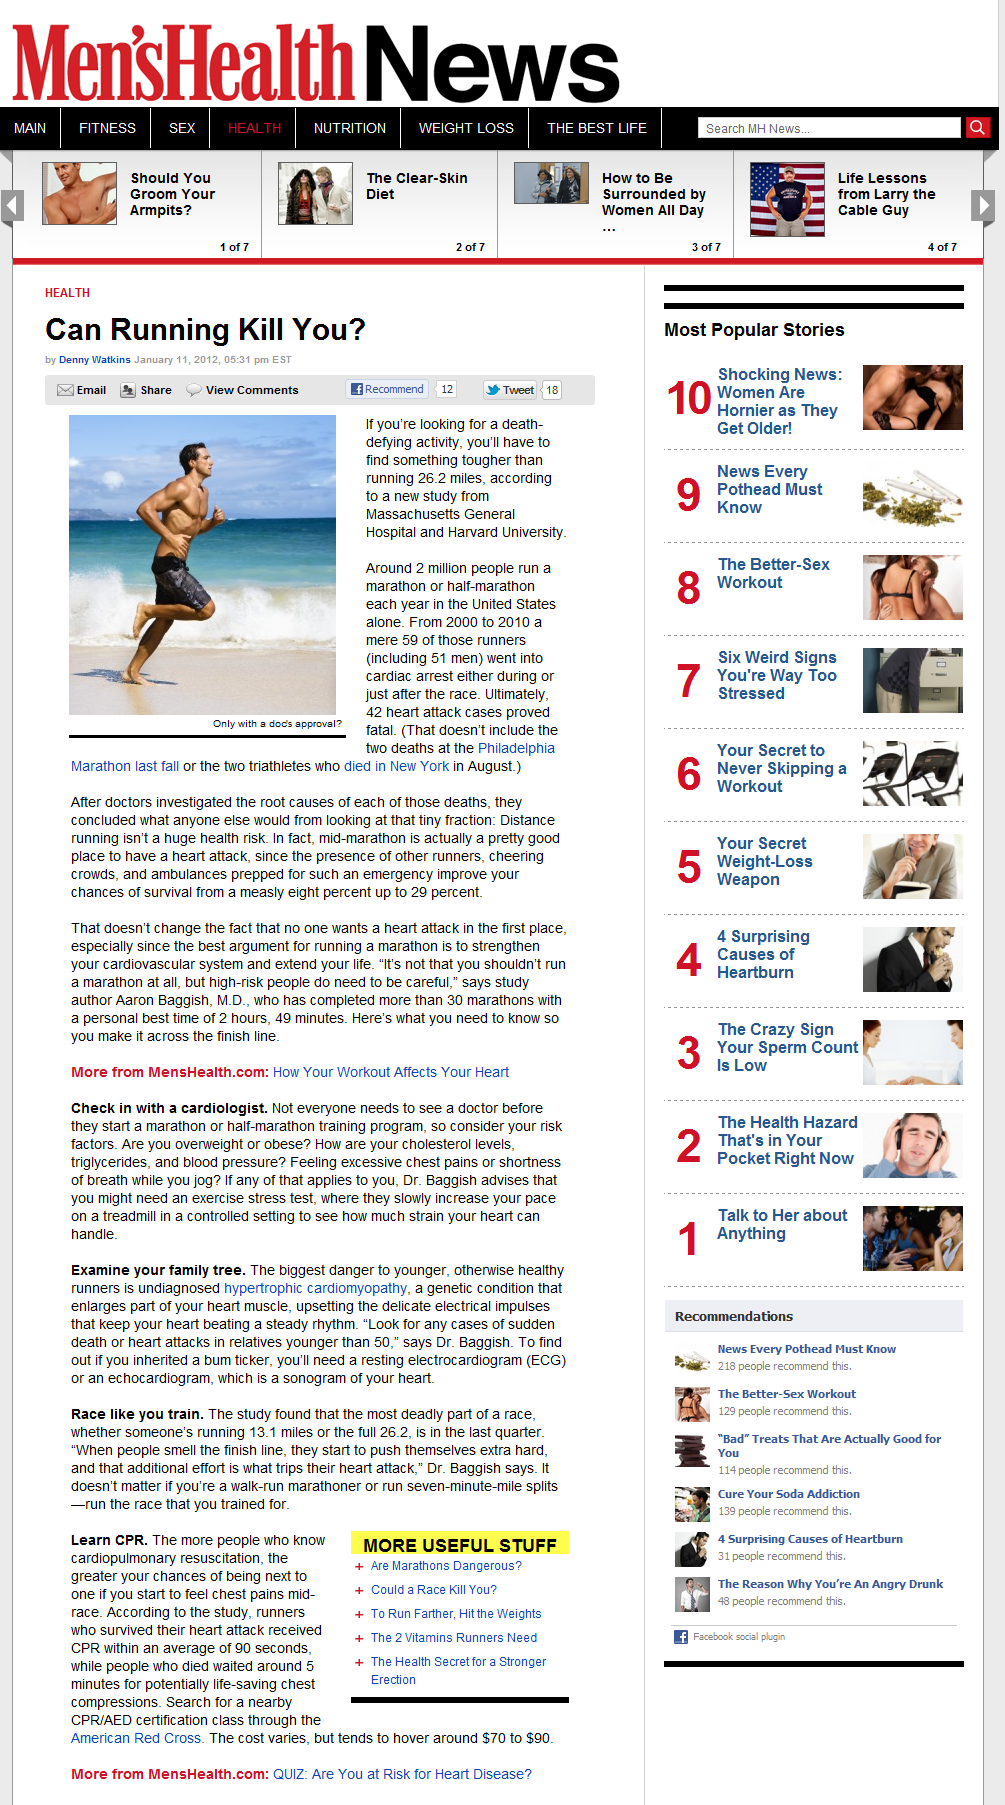 Heart Attacks and Marathon Running - Men's Health News